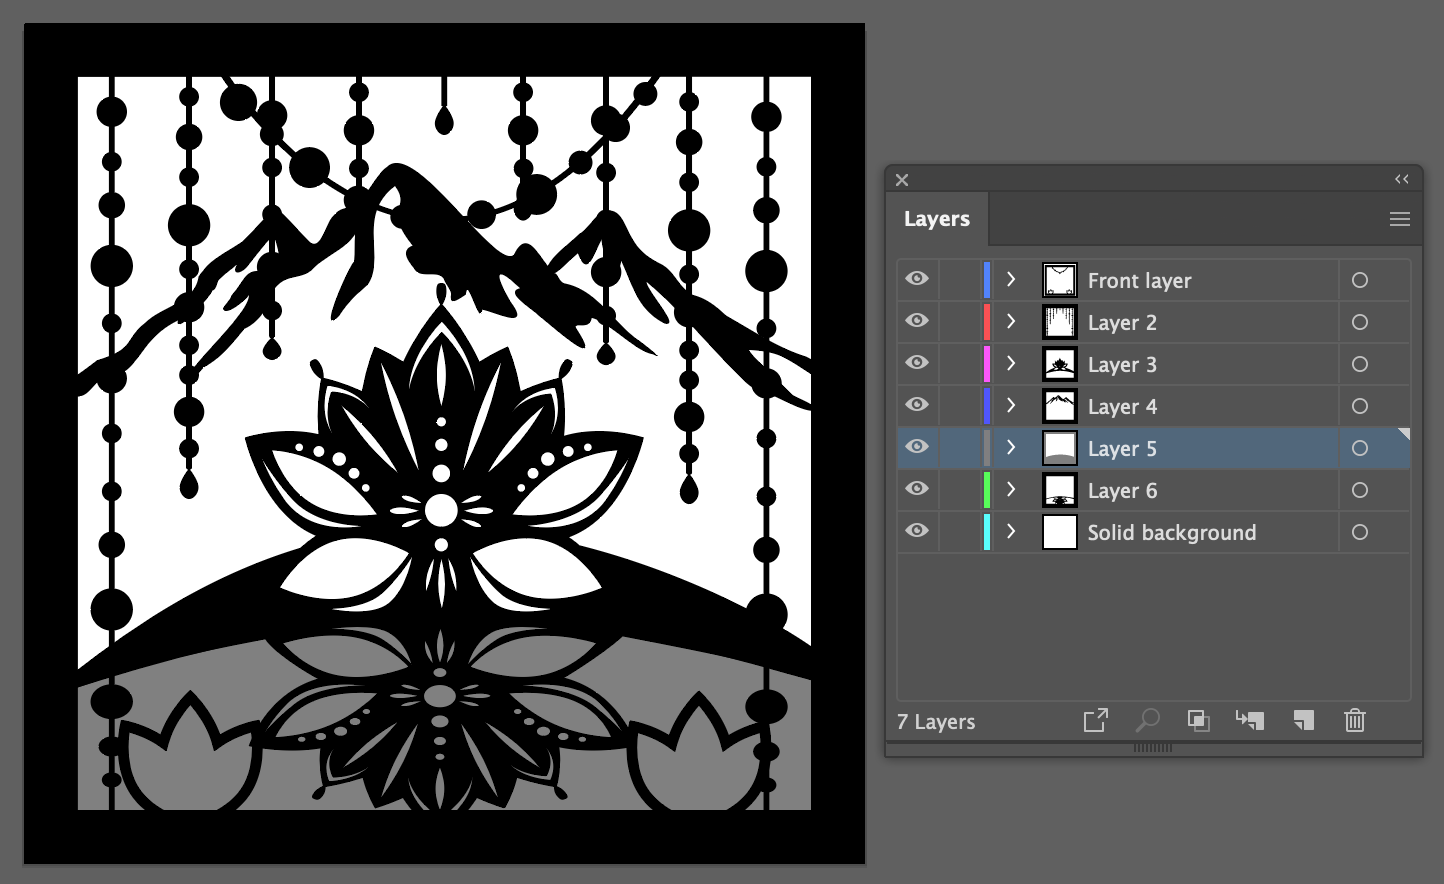 Lotus shadow box design by layers in Adobe Illustrator